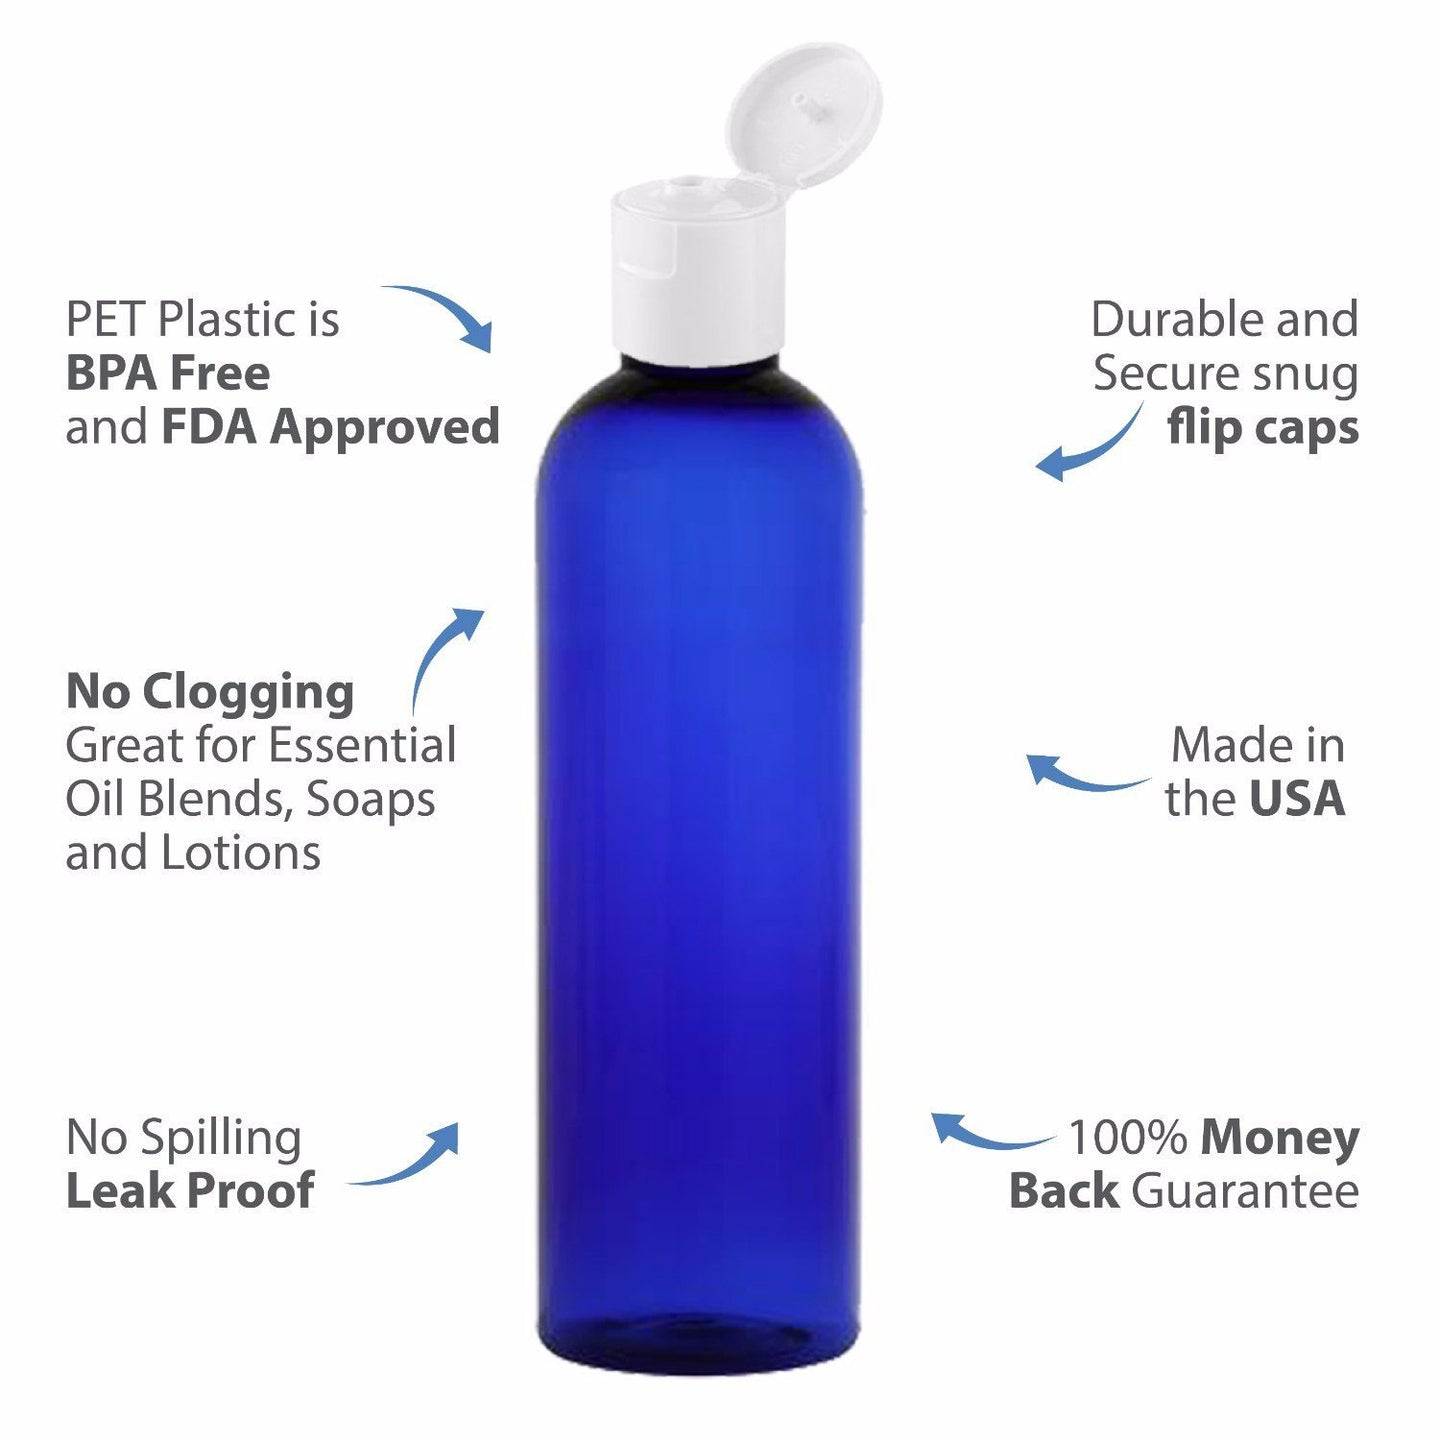 MoYo Natural Labs 8 oz Travel Bottles, Empty Travel Containers with Flip Caps, BPA Free PET Plastic Squeezable Toiletry/Cosmetic Bottles (Pack of 12, Cobalt Blue)